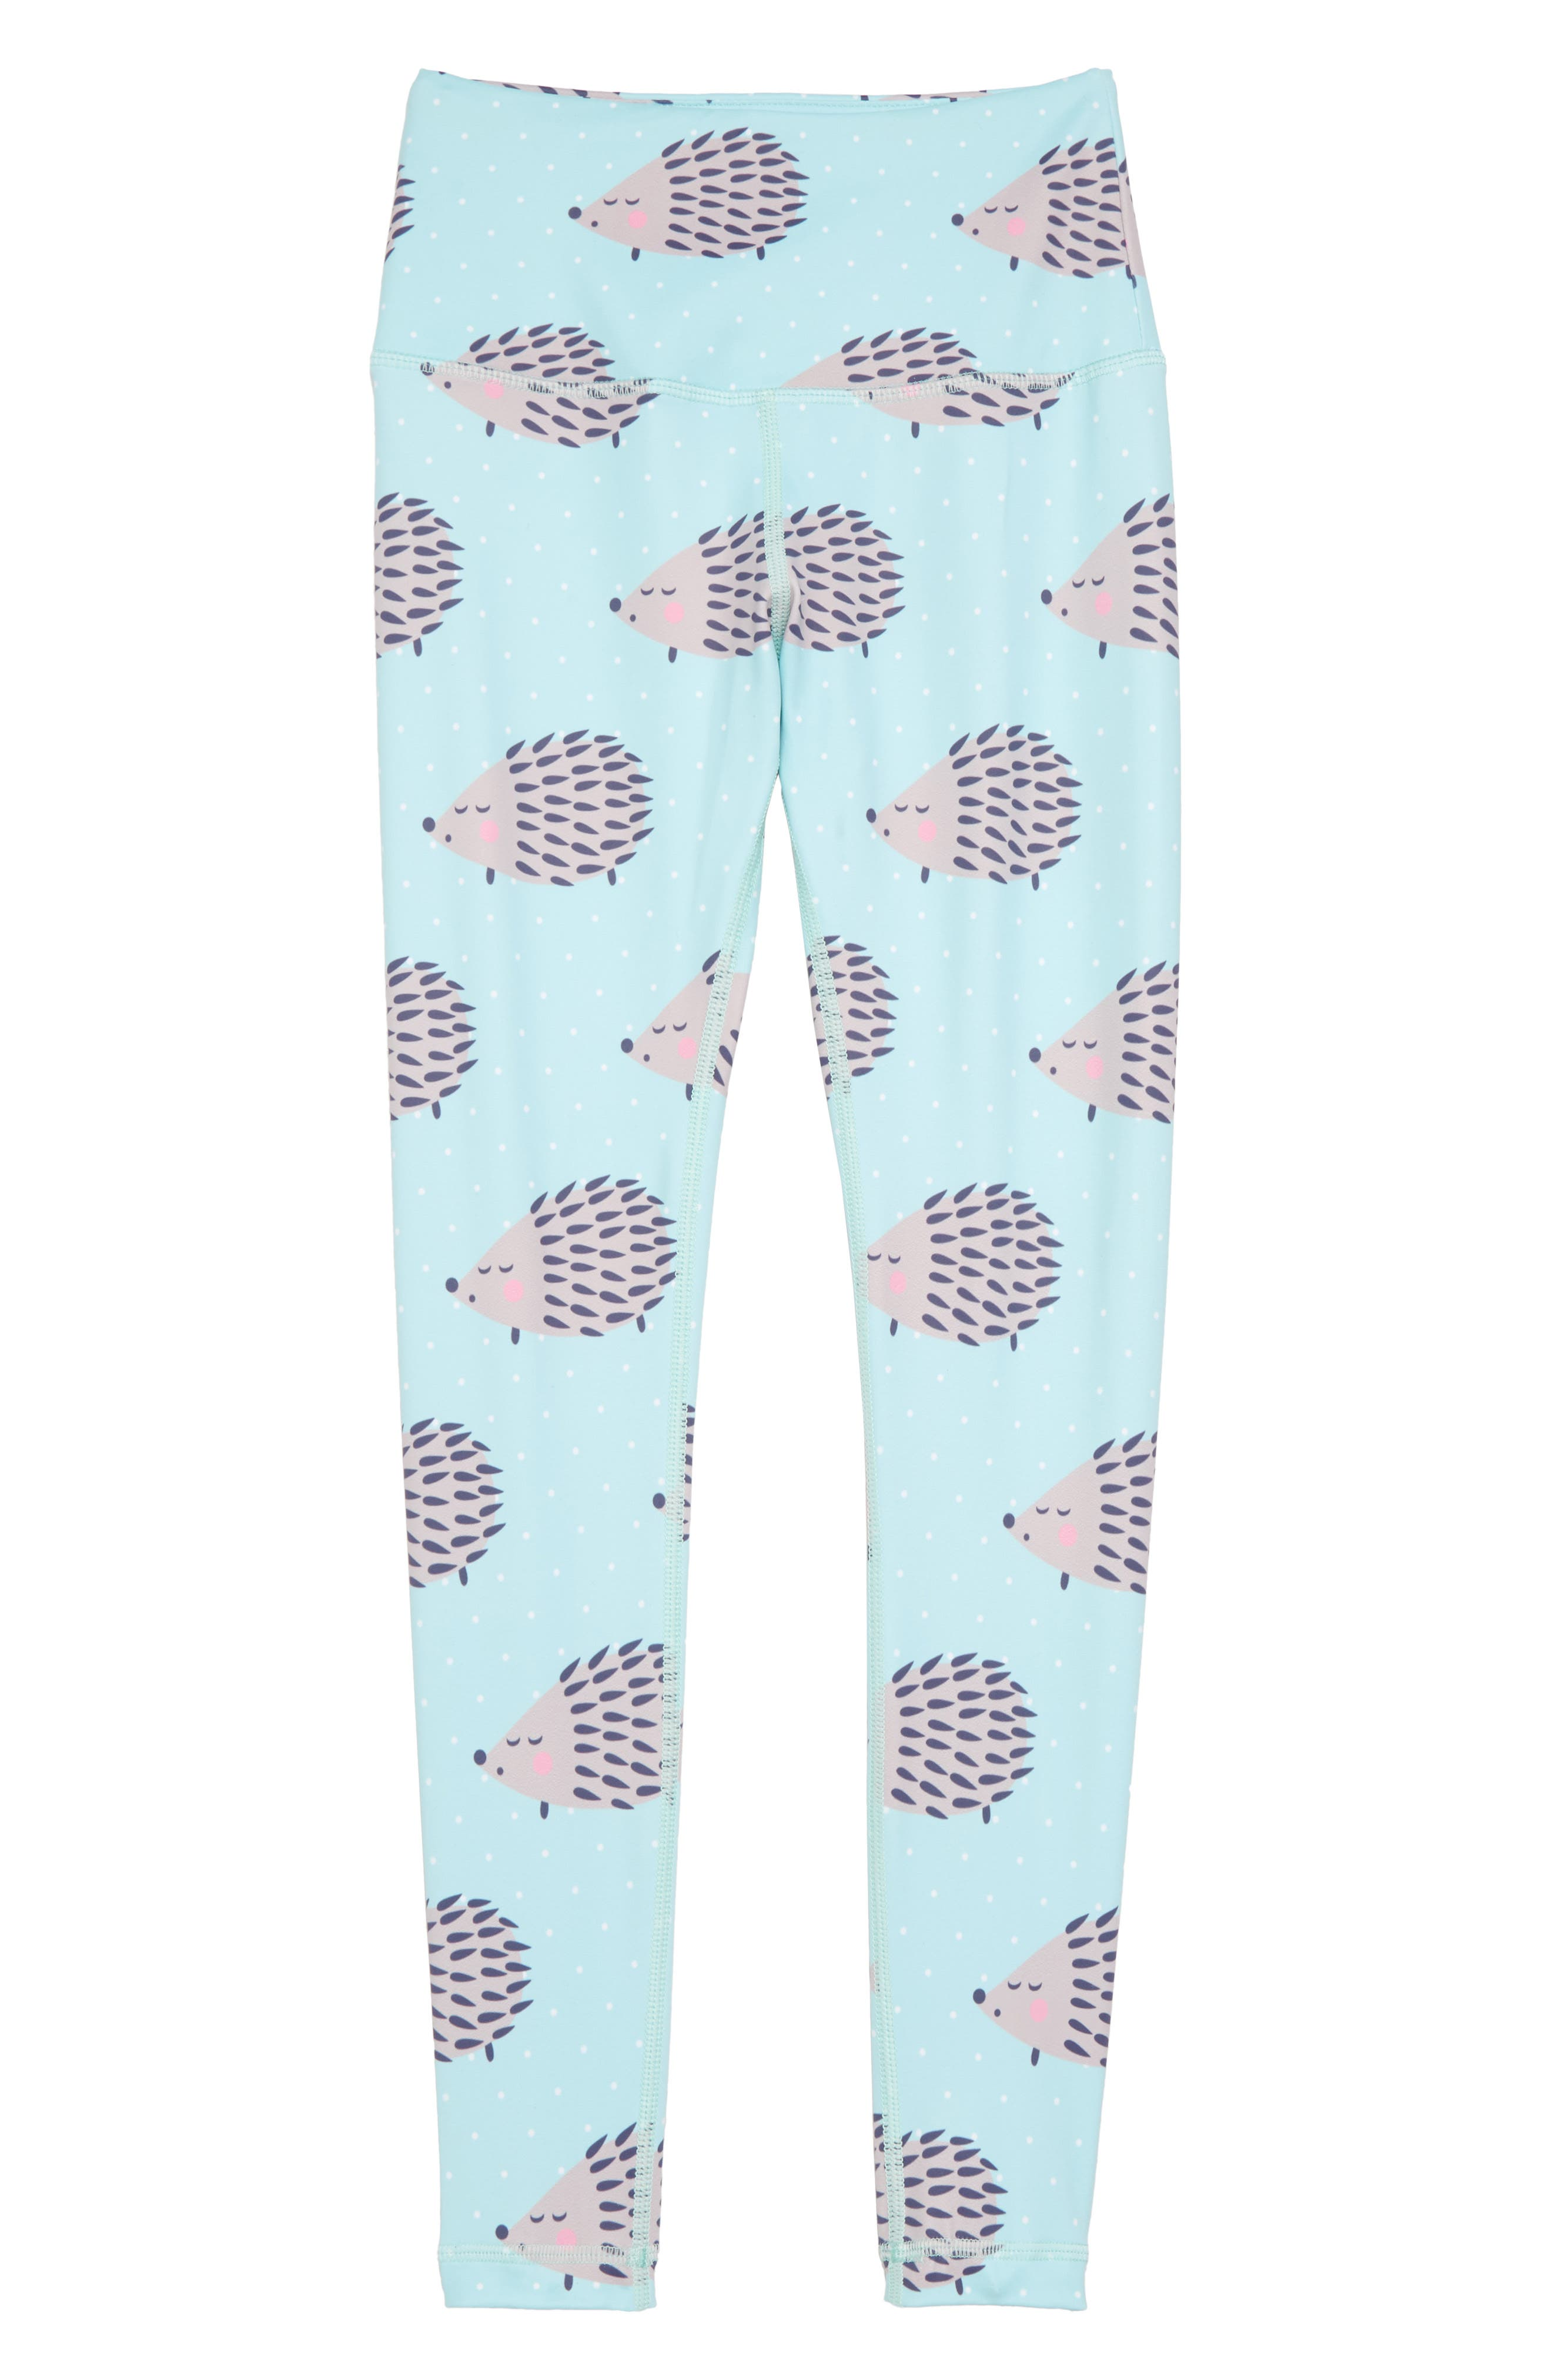 Happy Hedgehog Leggings,                             Main thumbnail 1, color,                             440